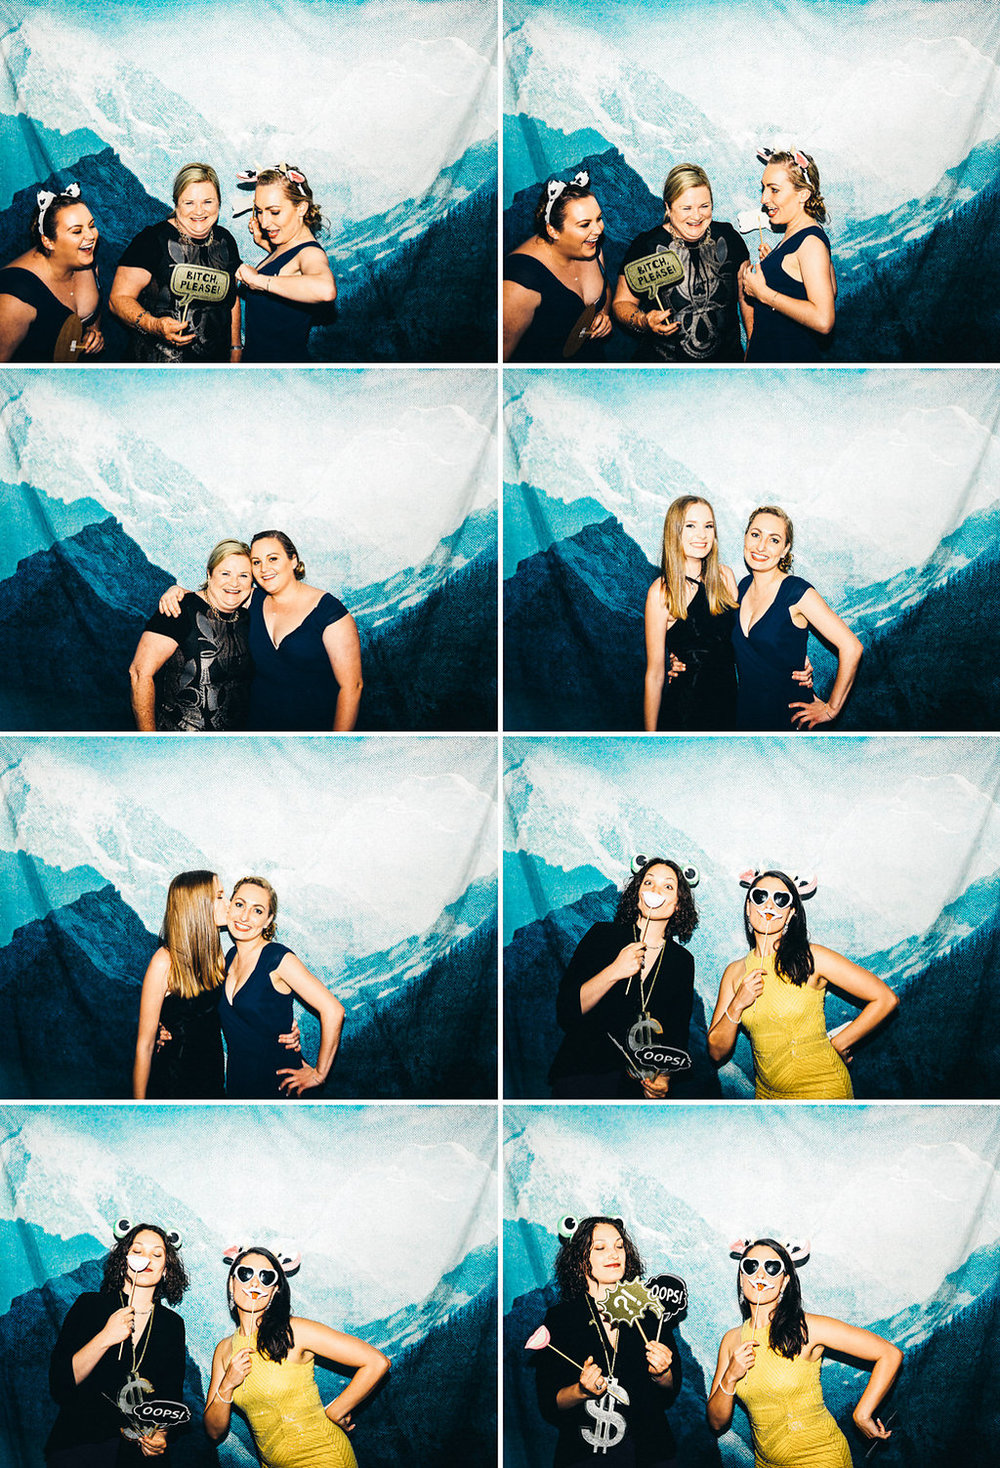 photobooth-129.jpg